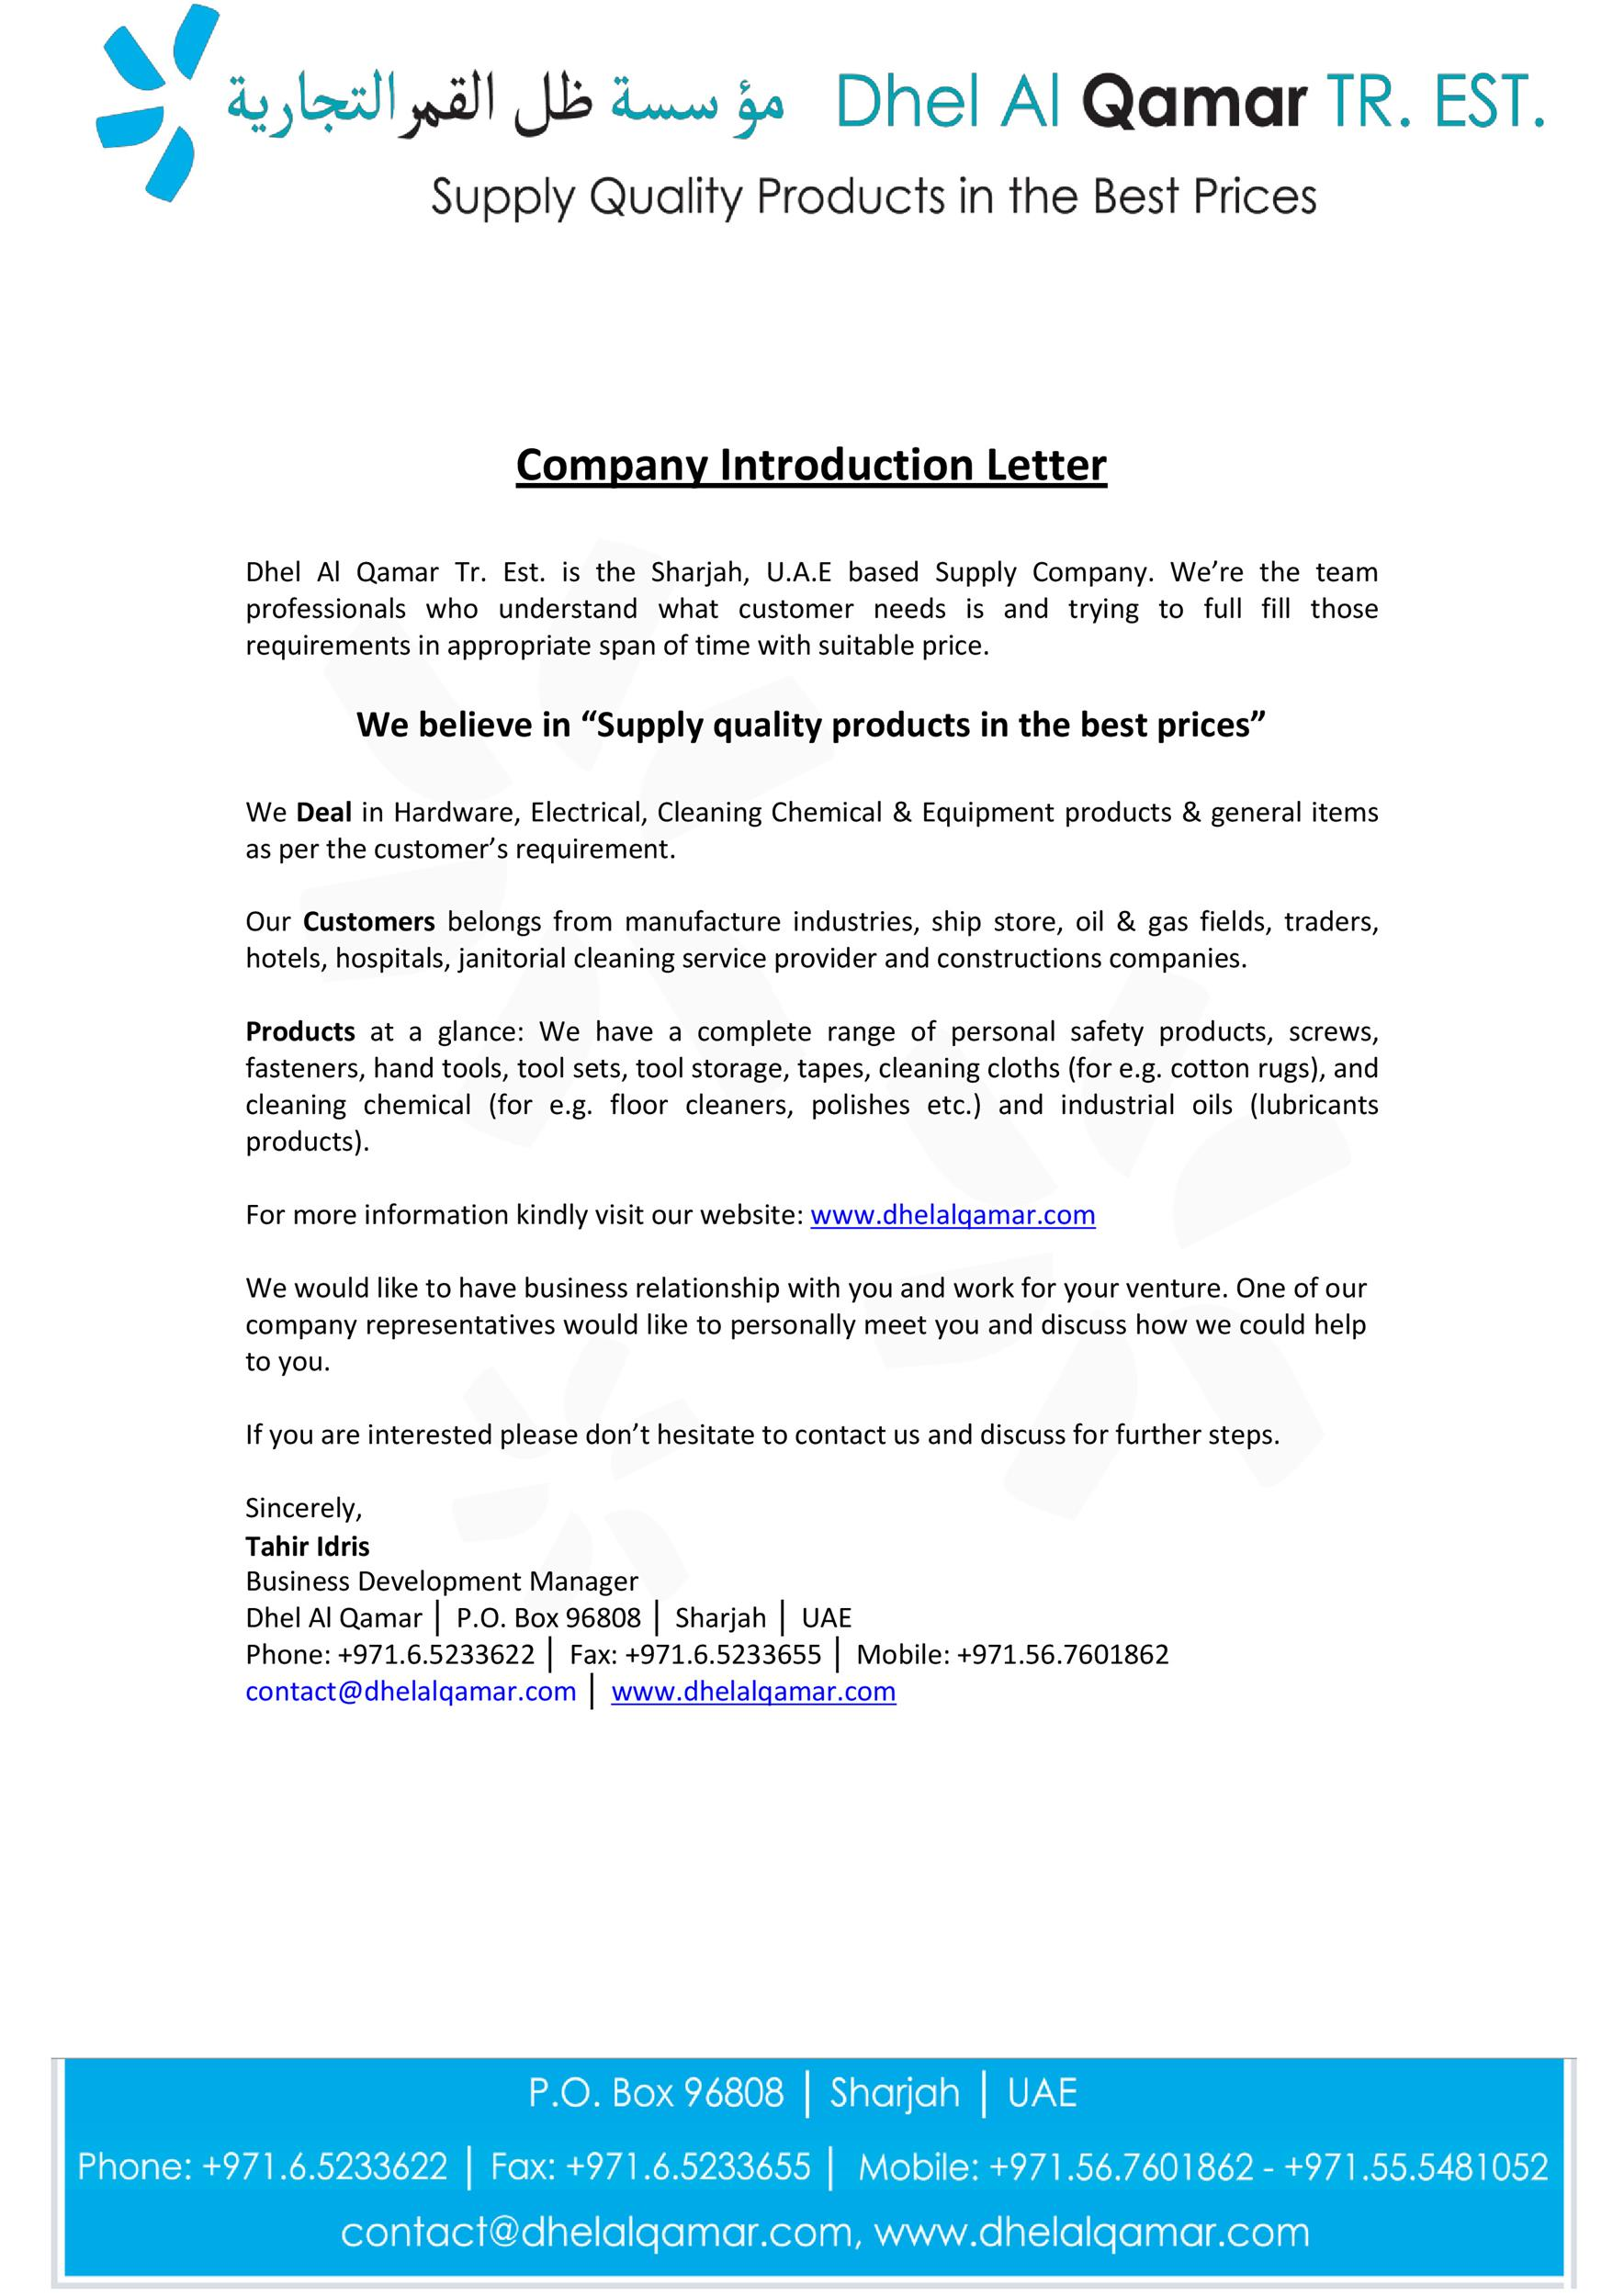 34 free business introduction letters  pdf  u0026 ms word   u1405